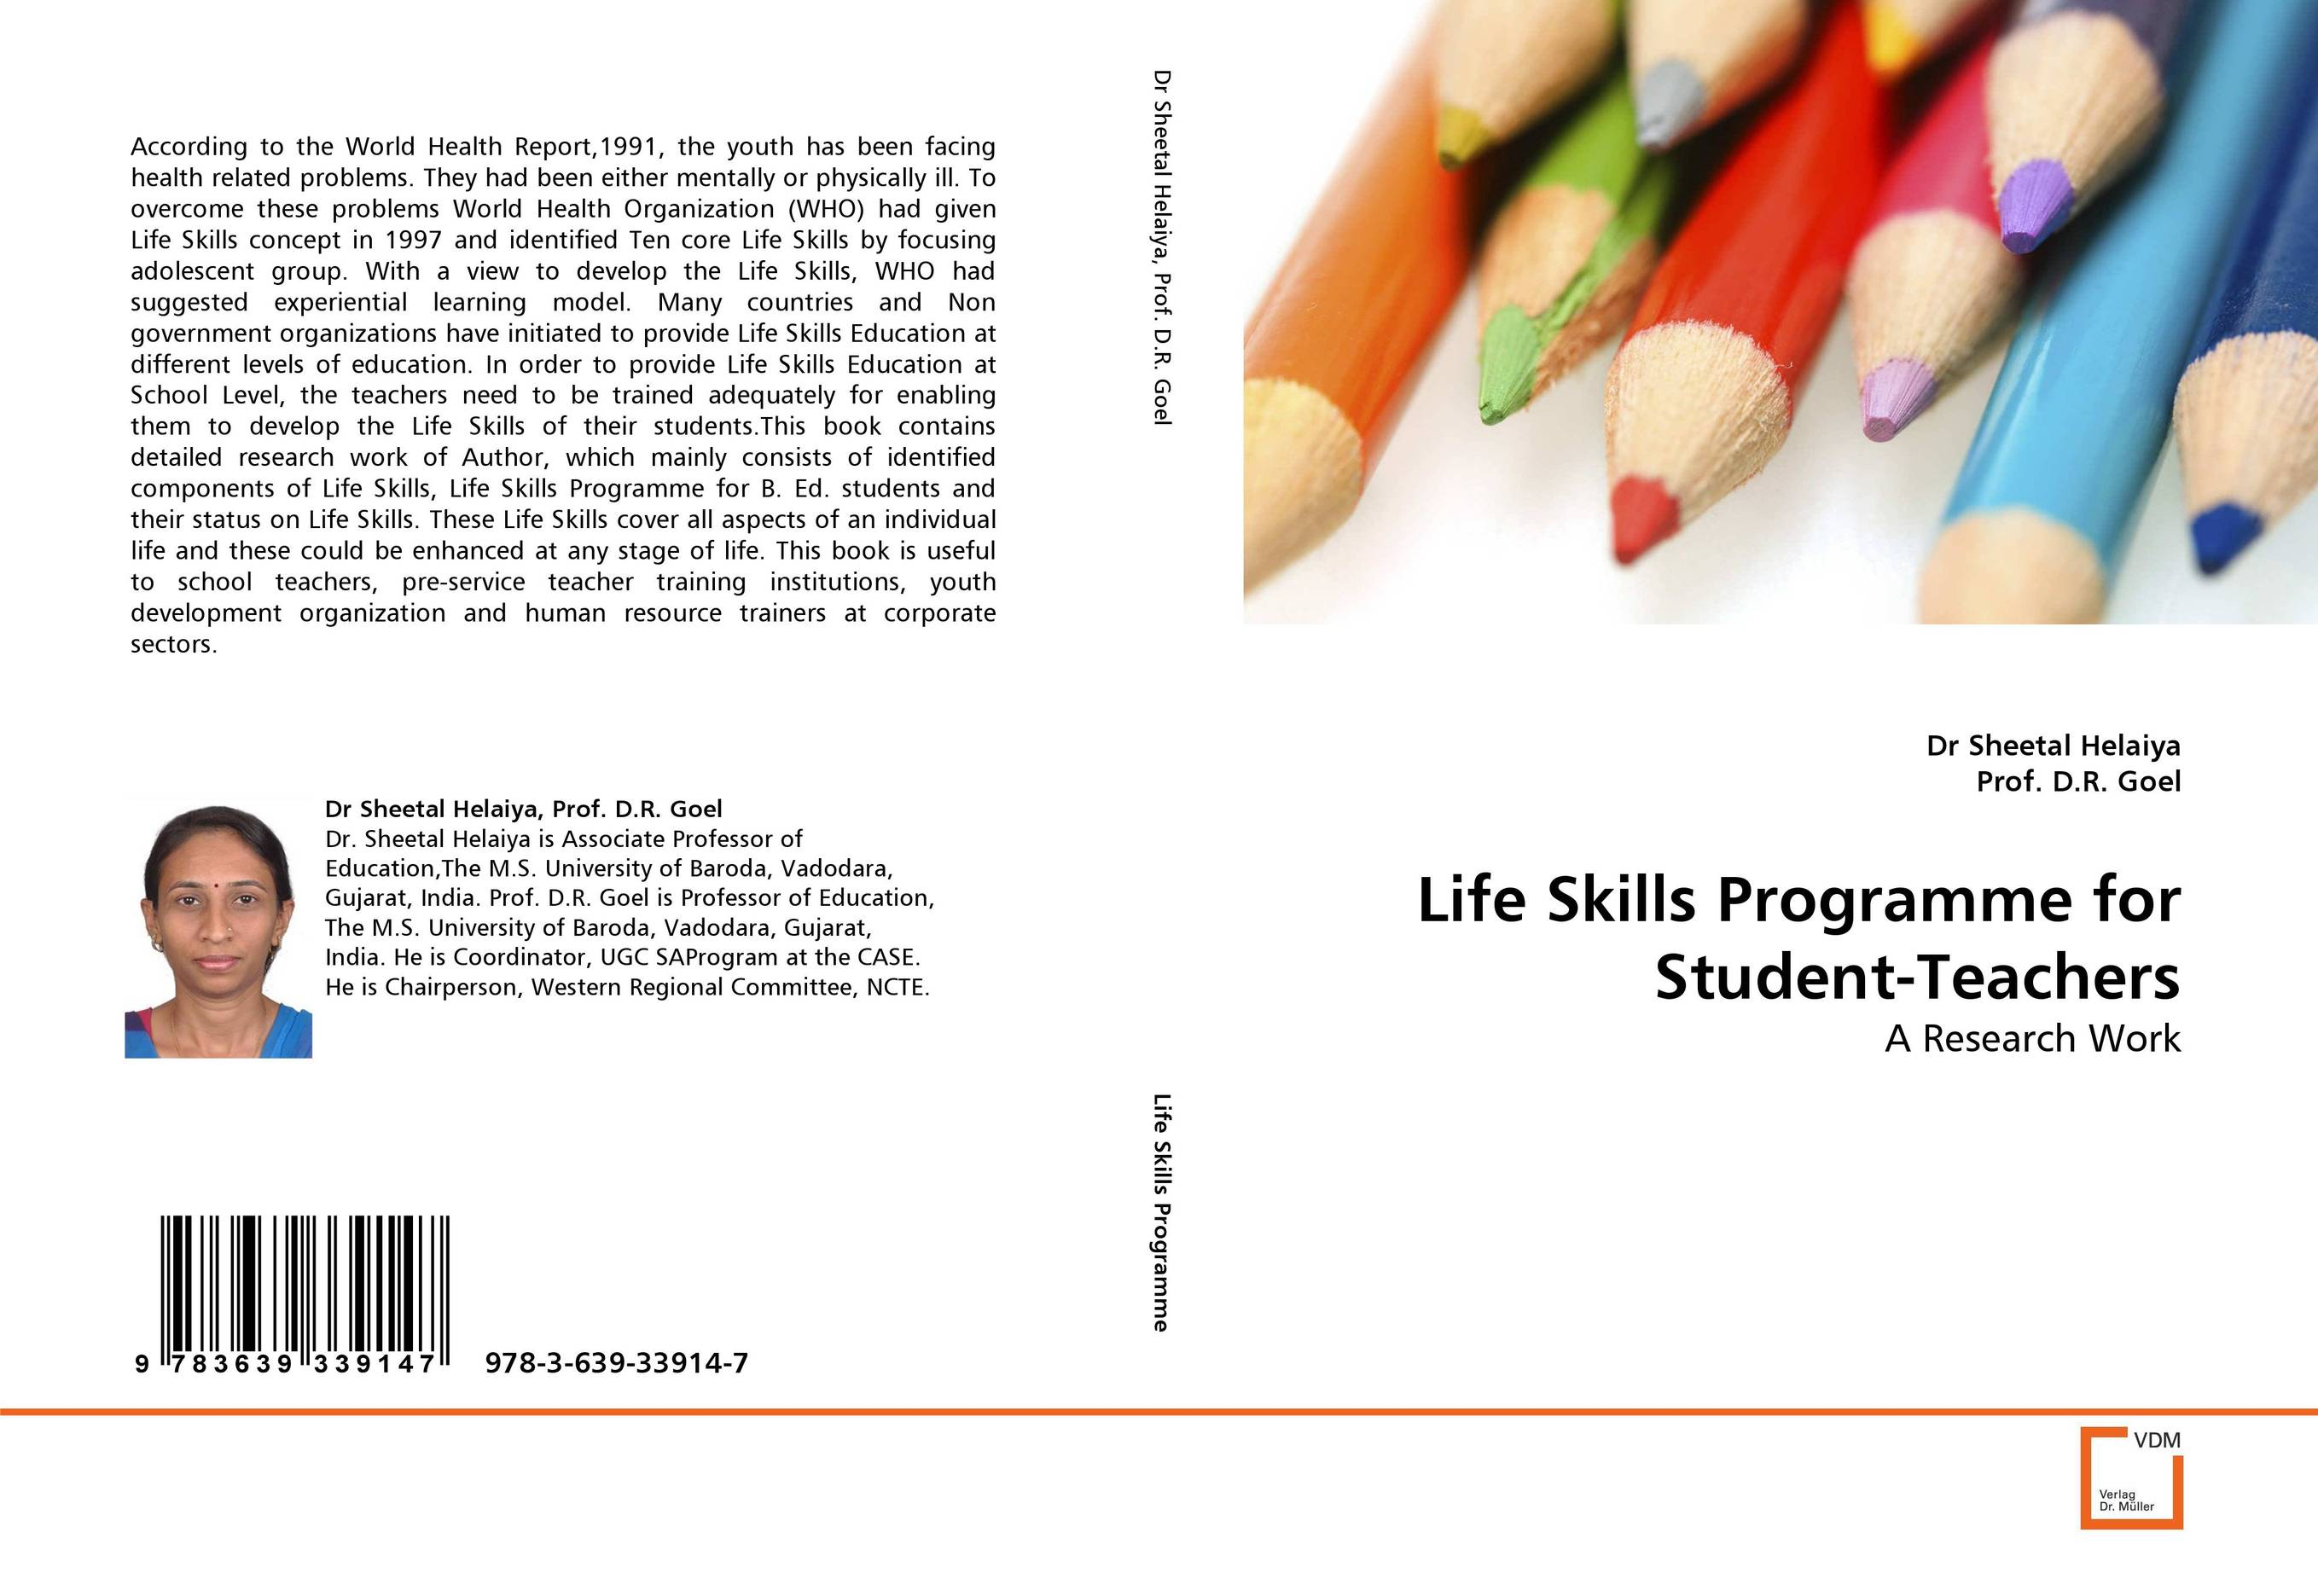 Life Skills Programme for Student-Teachers foundations in craniosacral biodynamics volume one the breath of life and fundamental skills